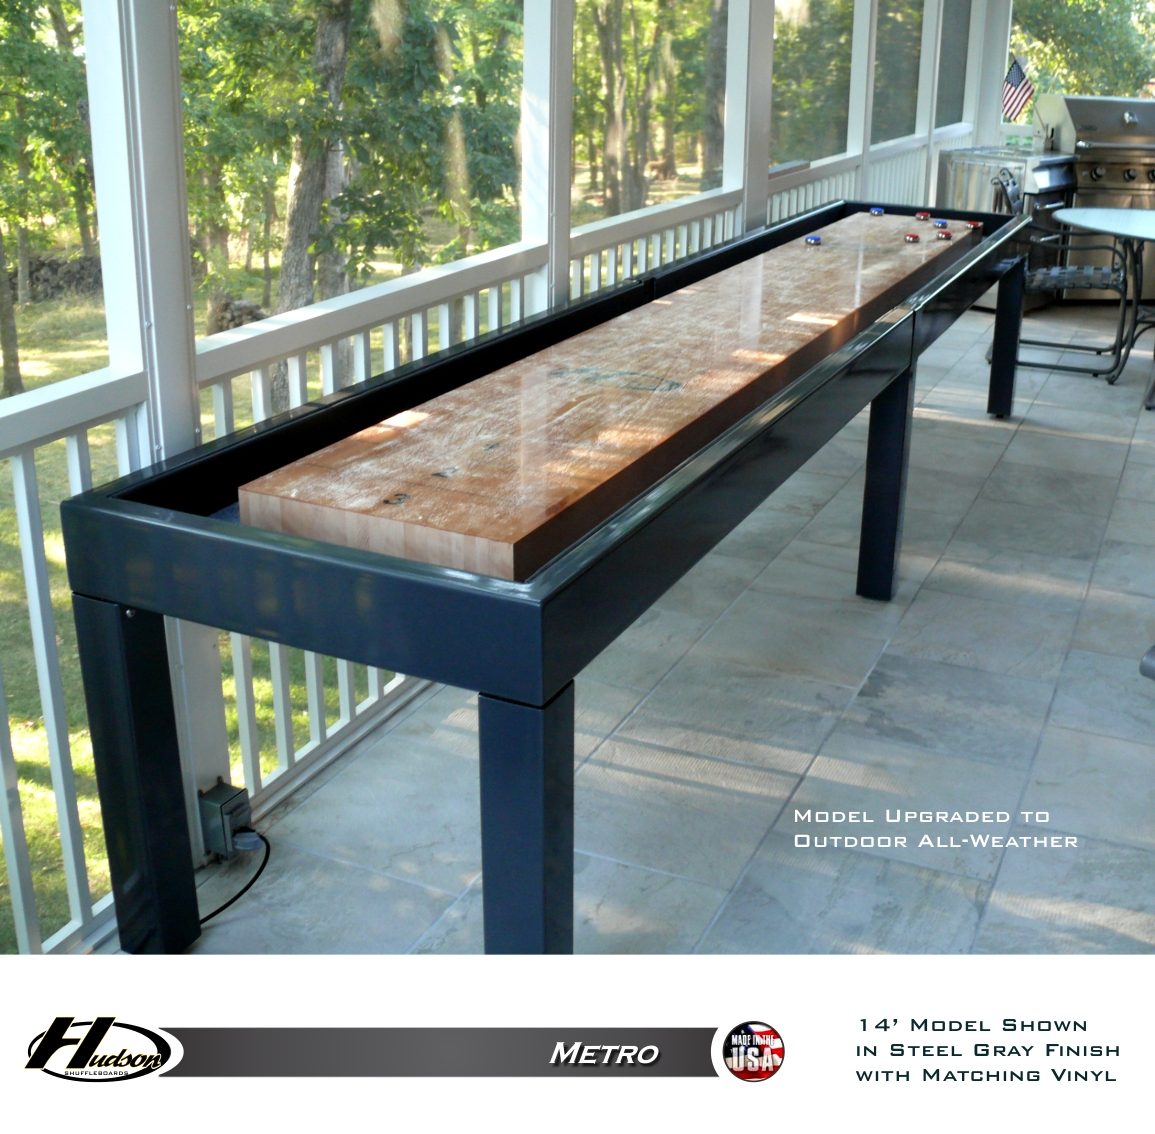 Shuffleboard Table | Ricochet Shuffleboard Table | Bar Shuffleboard Scoring